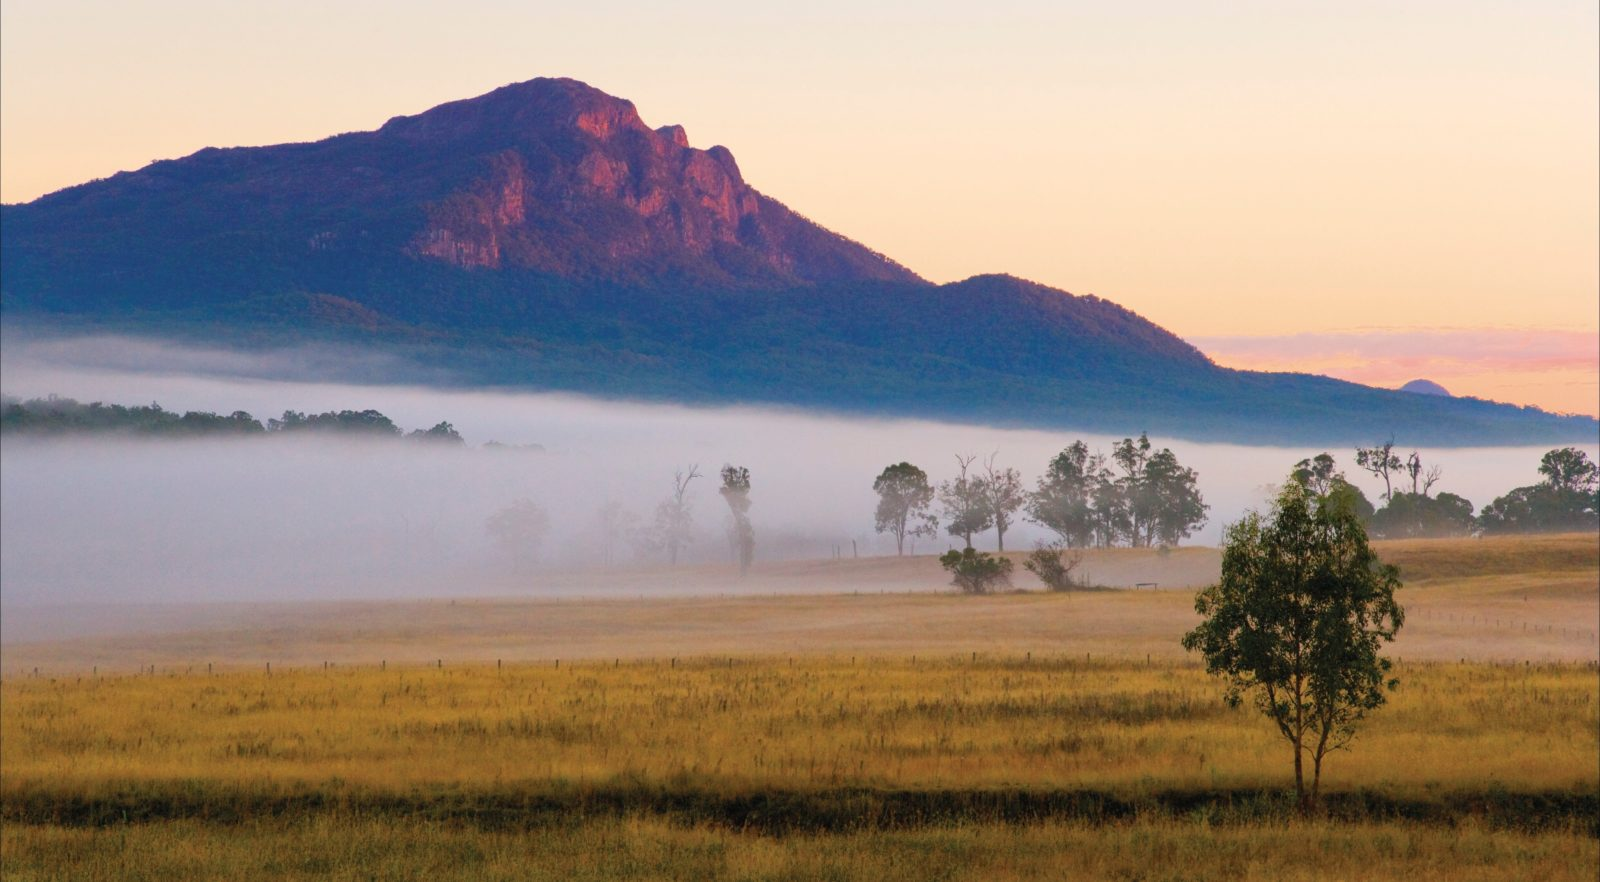 Mount Maroon with base shrouded in fog and farmlands in foreground.